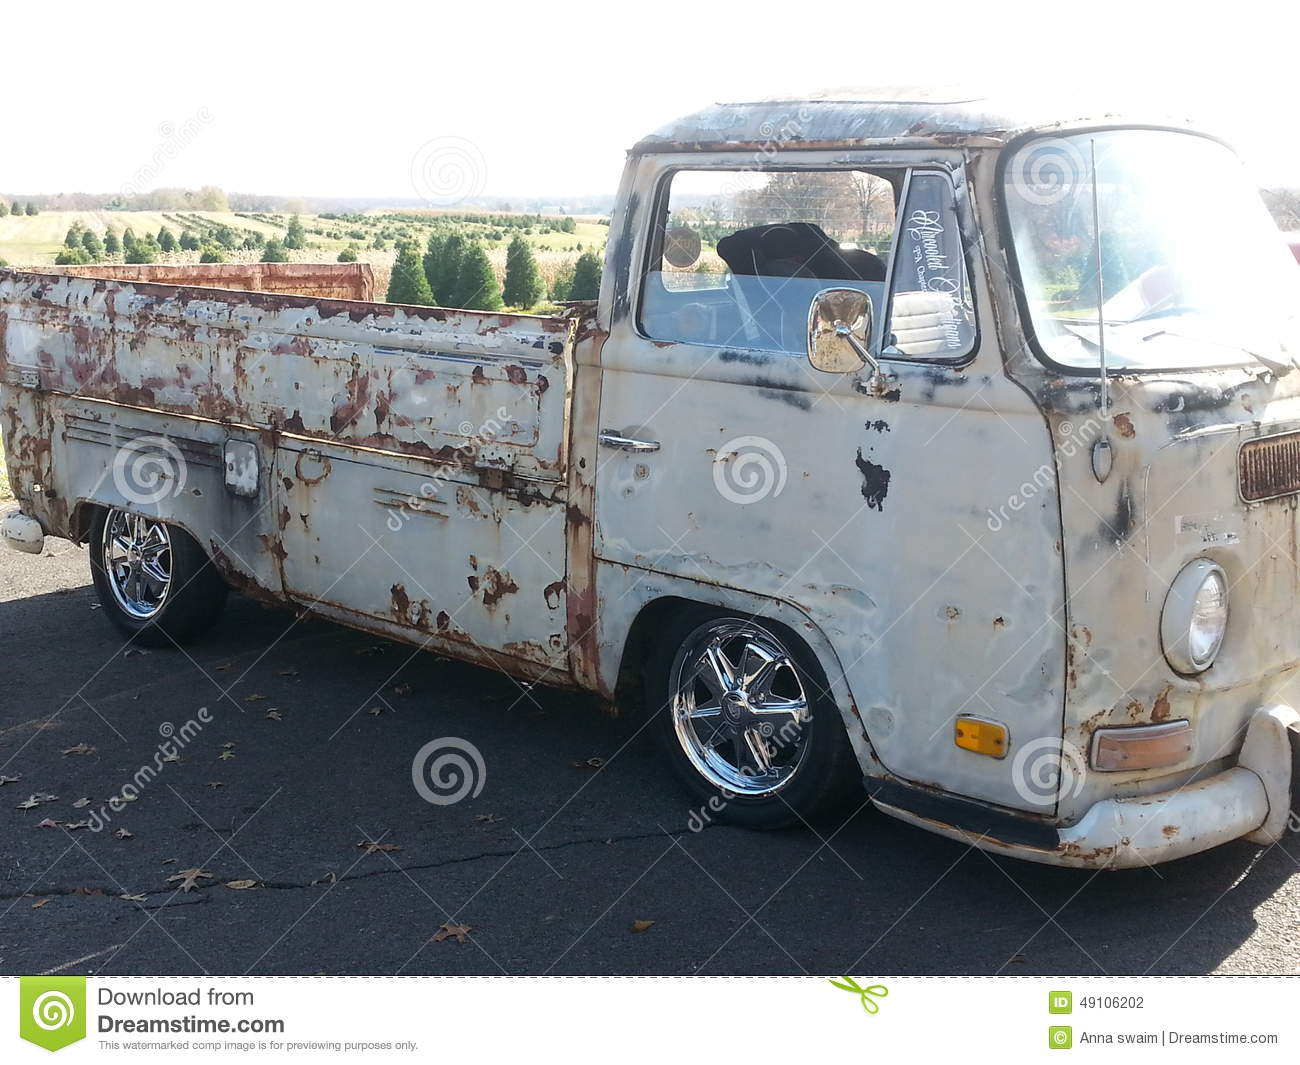 Old Vw pick up truck stock photo. Image of truck, sides - 49106202